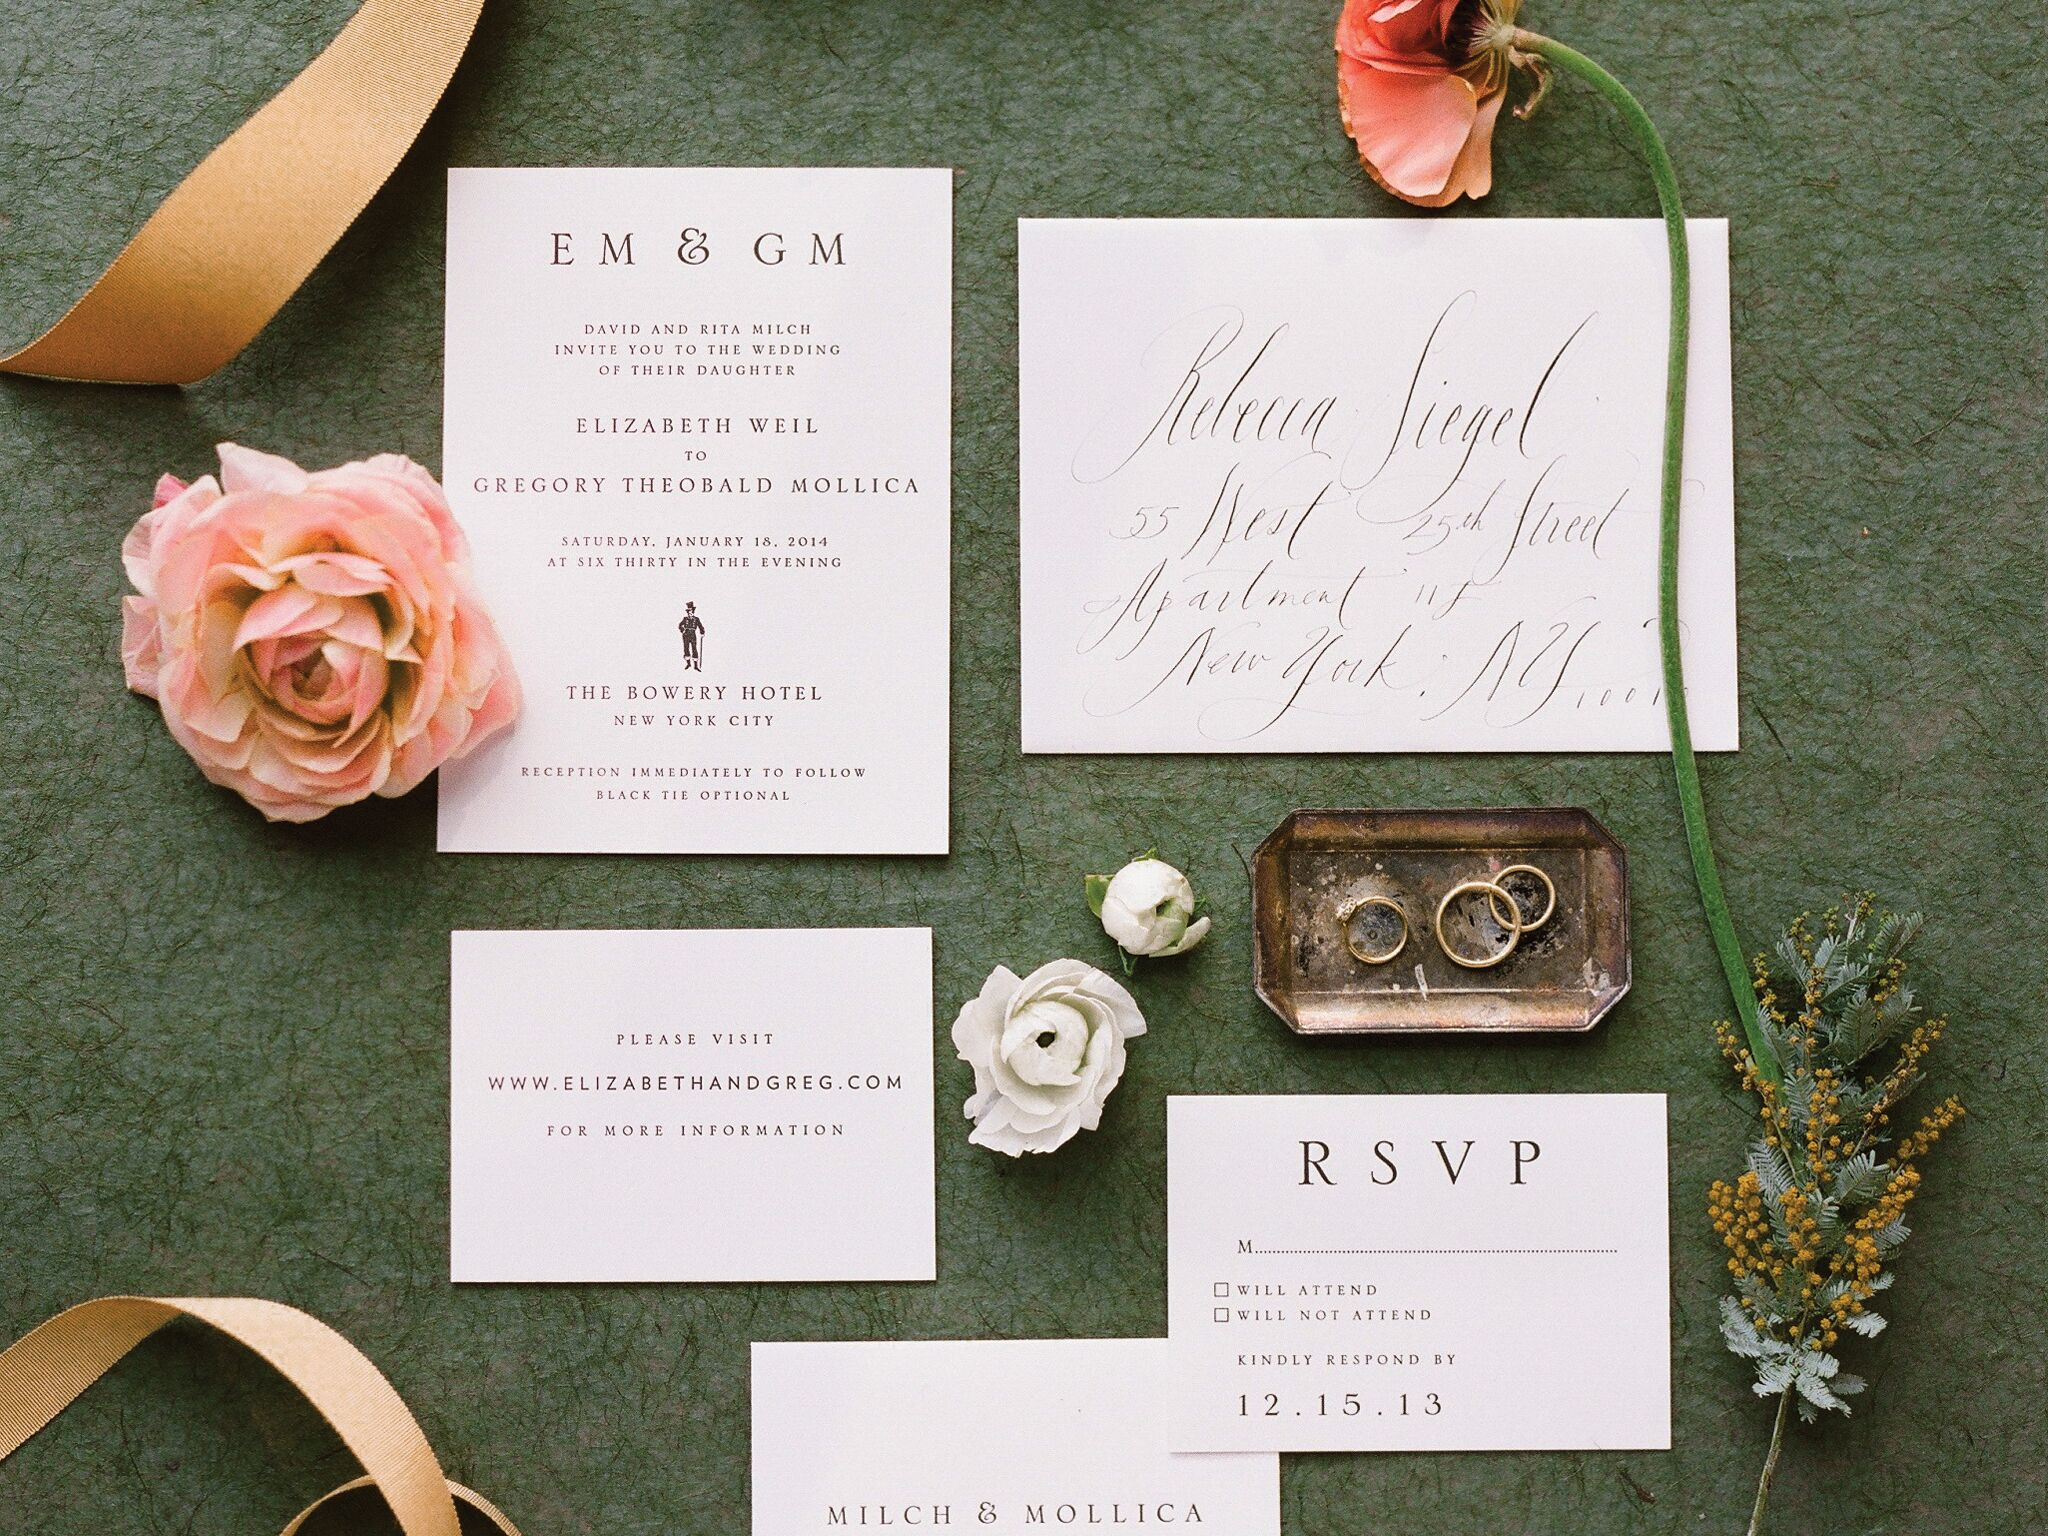 When Do You Send Invitations For Wedding: Top 10 Wedding Invitation Etiquette Questions